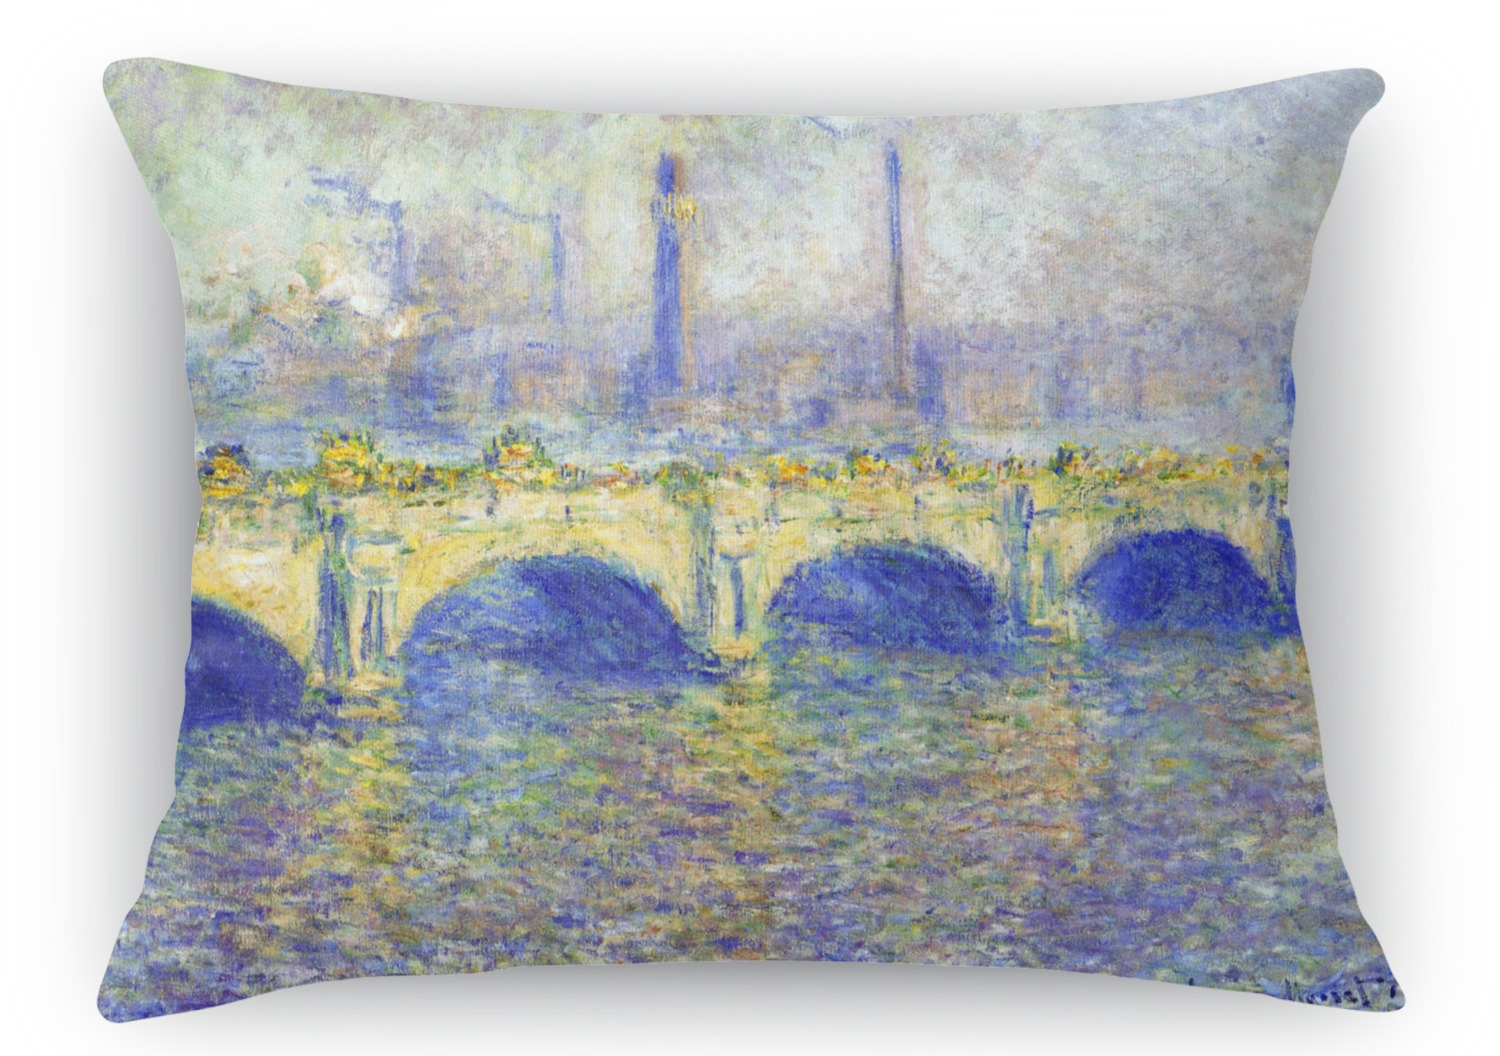 Waterloo Bridge Rectangular Throw Pillow - 18